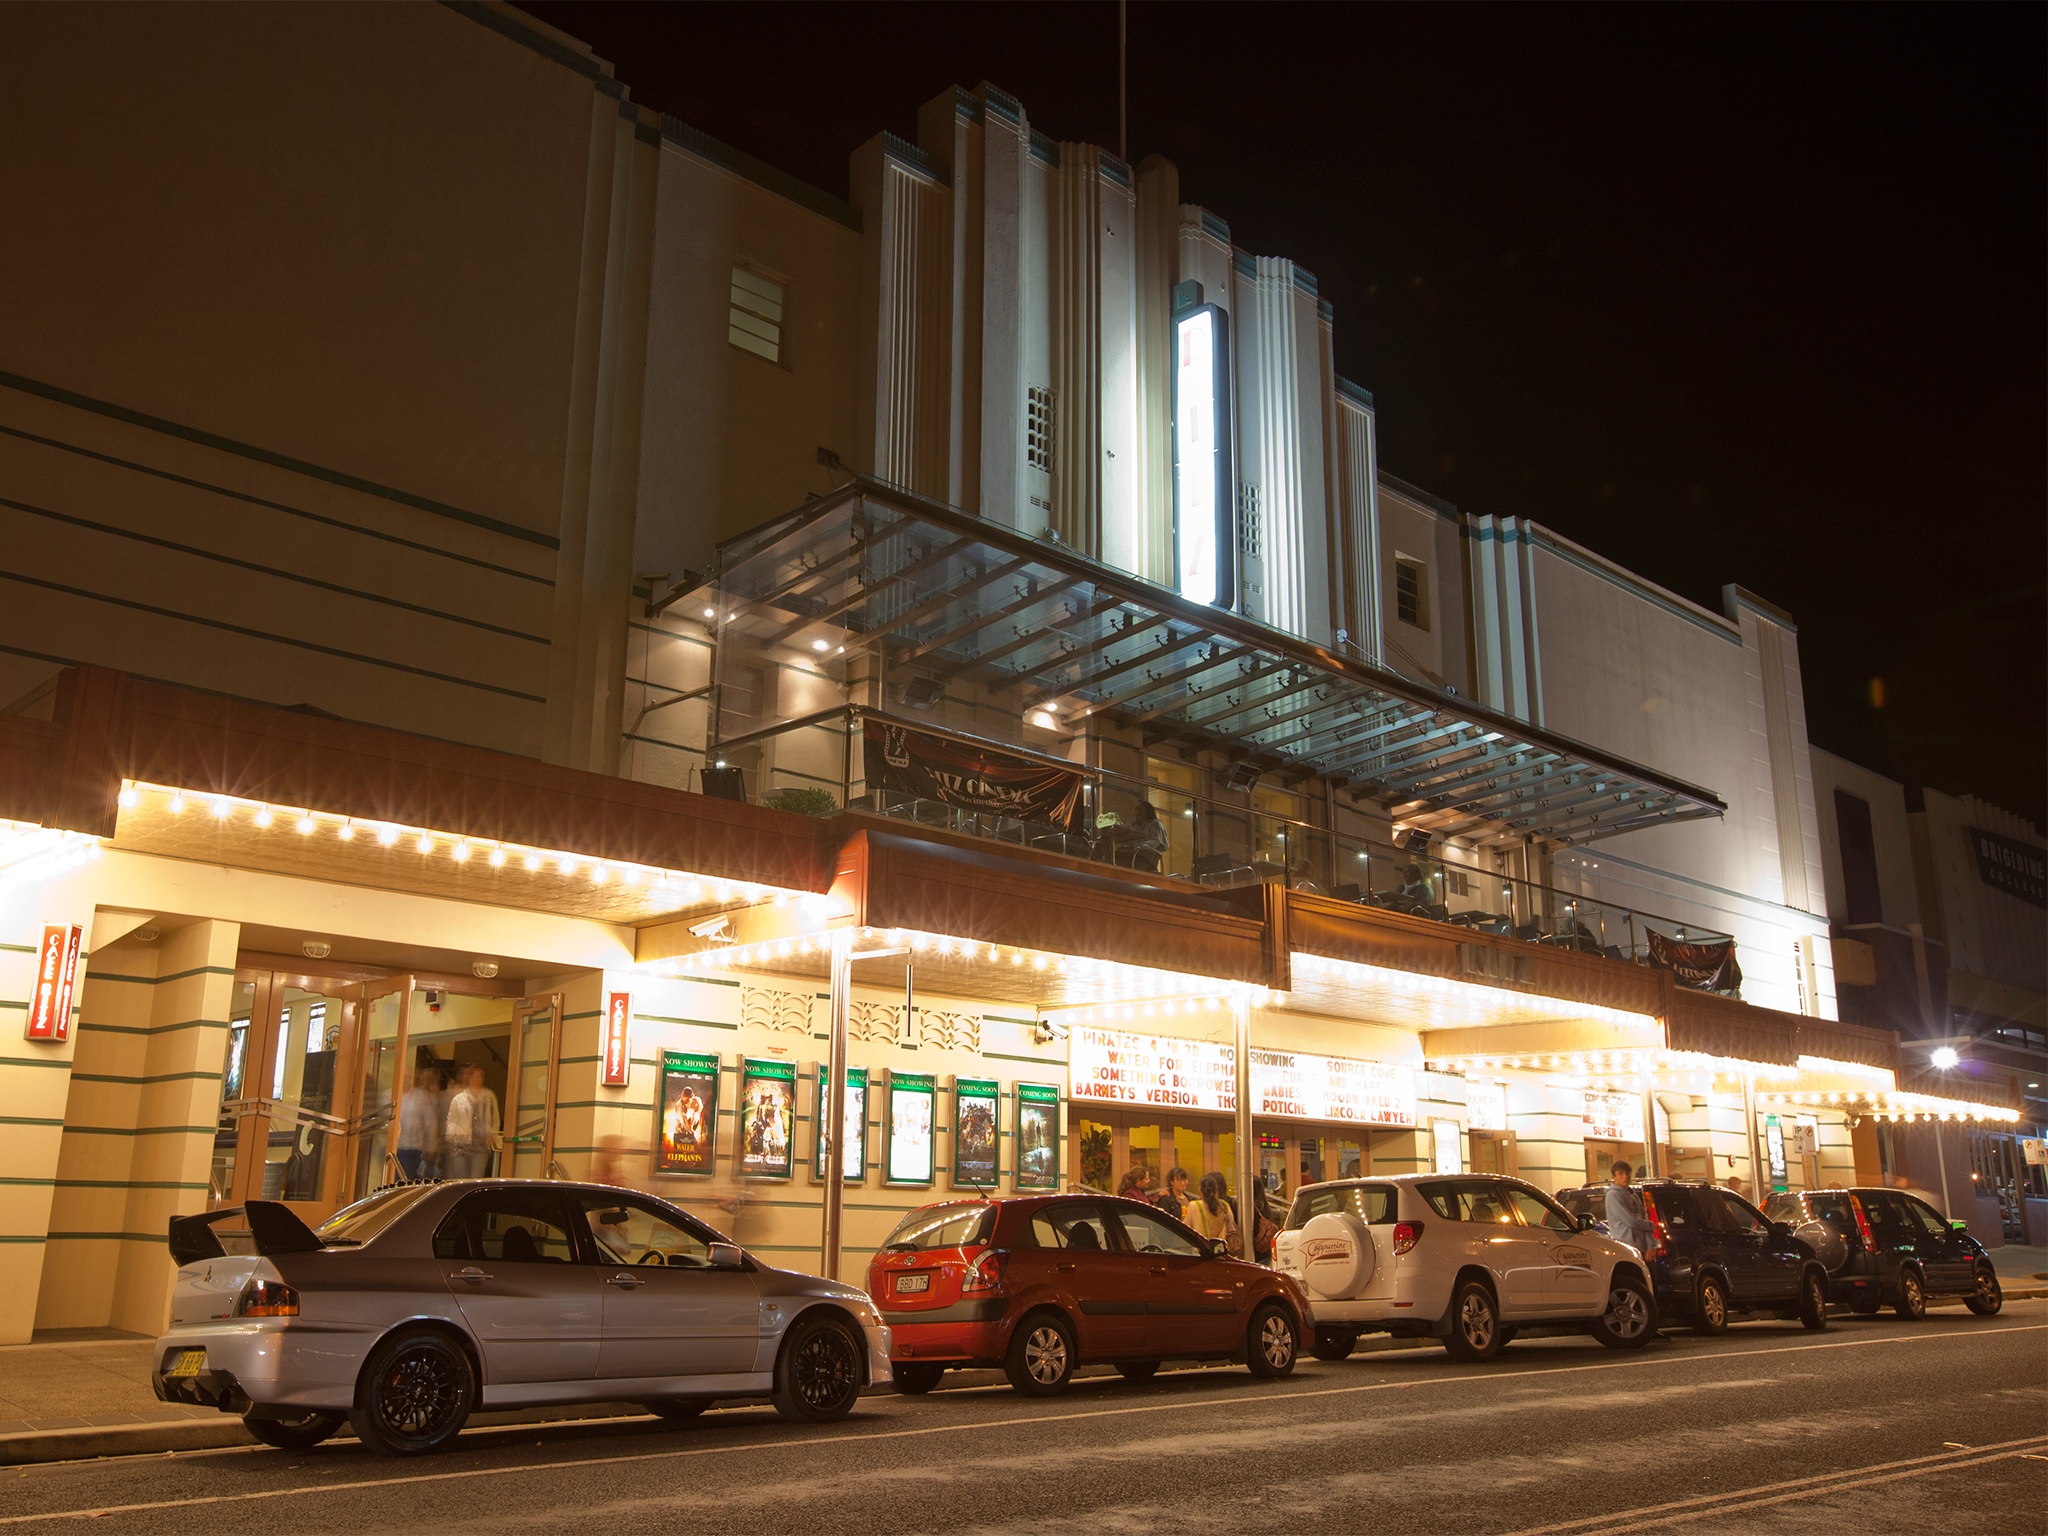 The best cinemas in Sydney